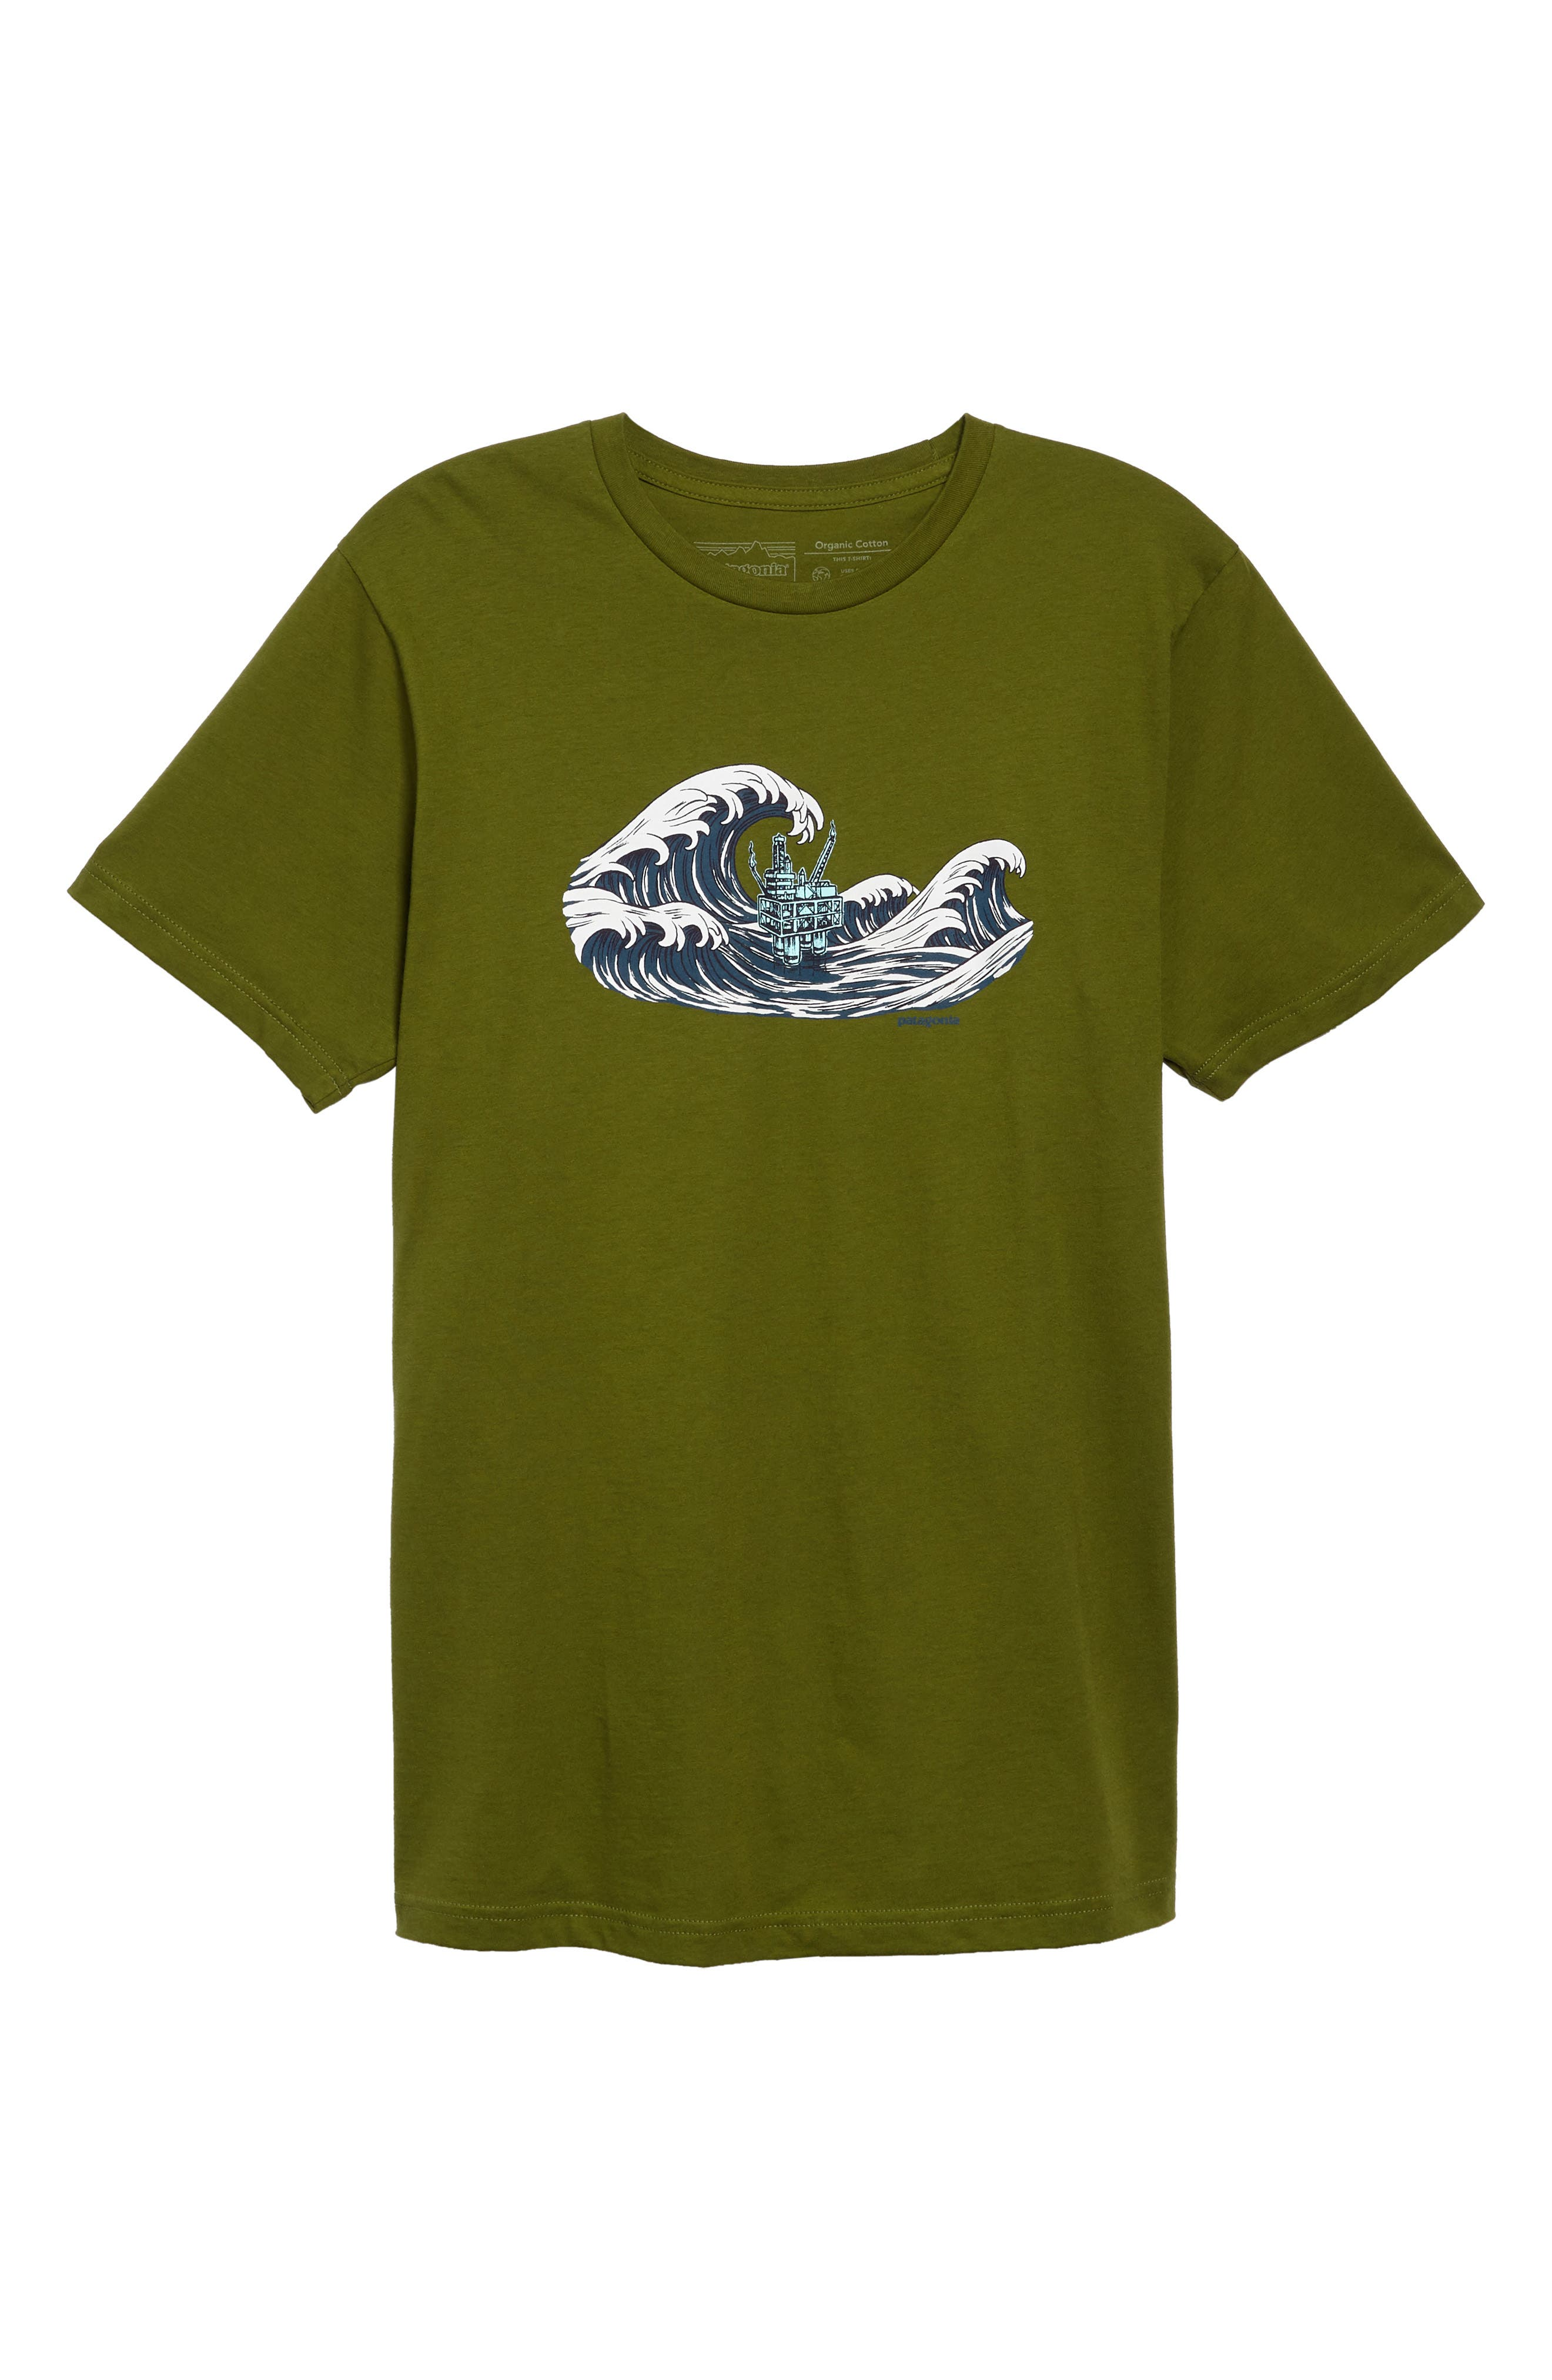 Oily Olas Slim Fit Organic Cotton T-Shirt,                             Alternate thumbnail 6, color,                             Sprouted Green